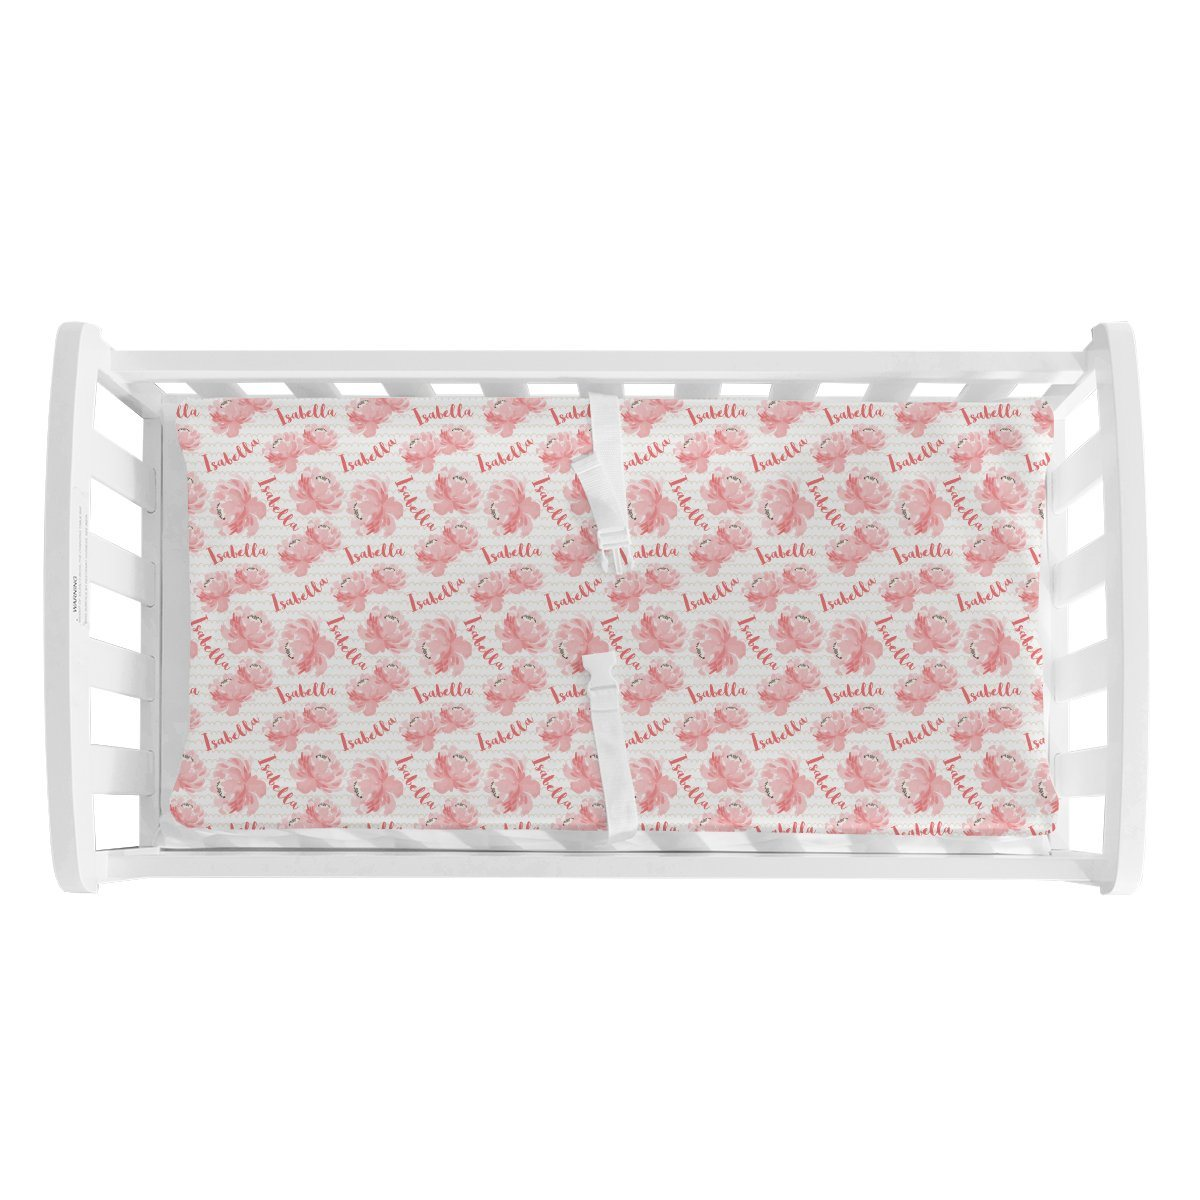 Isabella's Scallops and Peonies | Changing Pad Cover